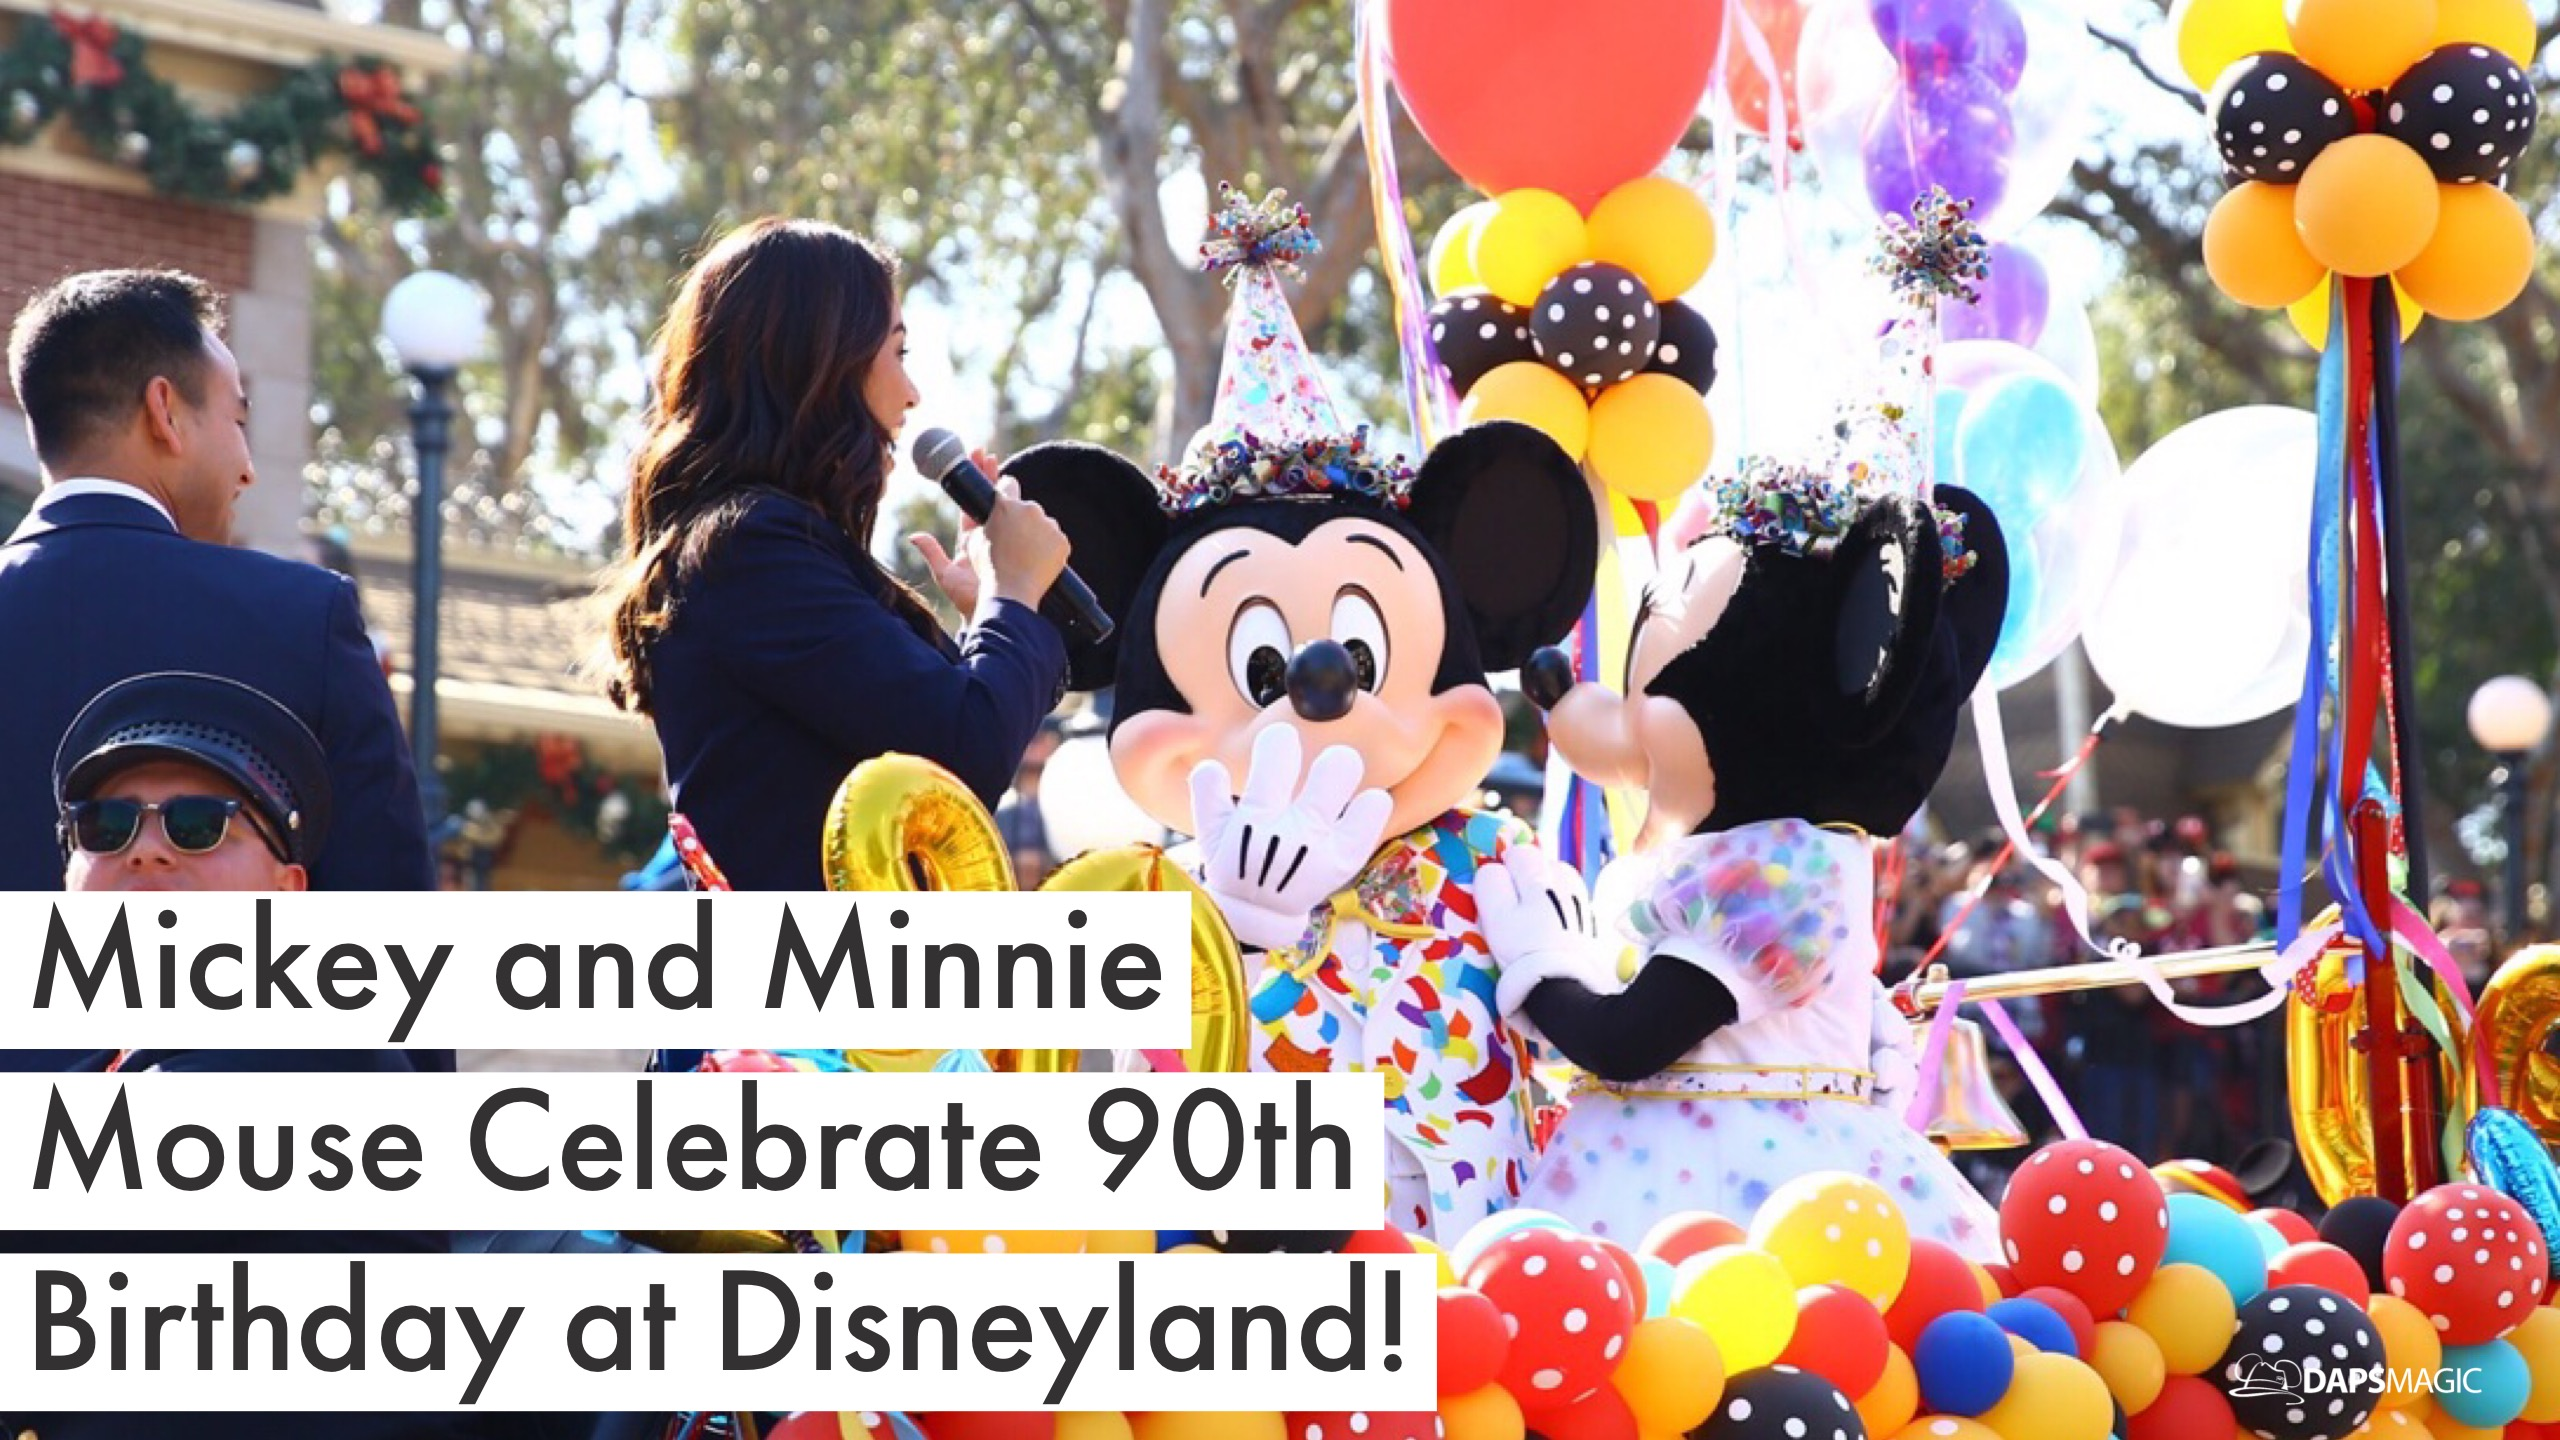 Mickey and Minnie Mouse Party Down Main Street USA with the Gang for the Grand 90th Birthday Celebration!